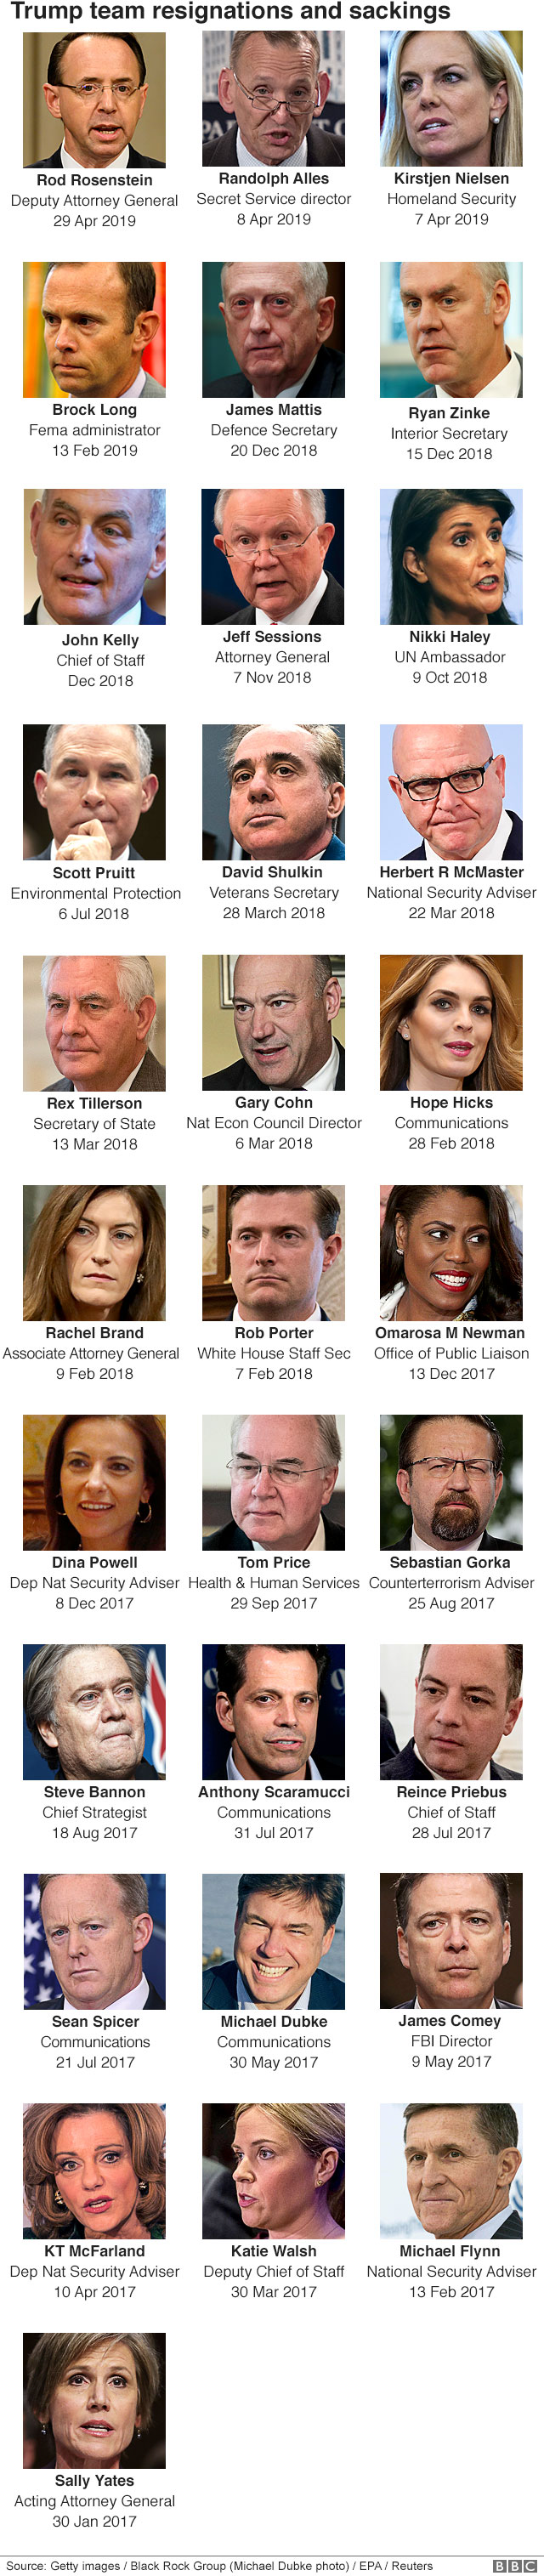 A graphic showing resignations from the Trump administration